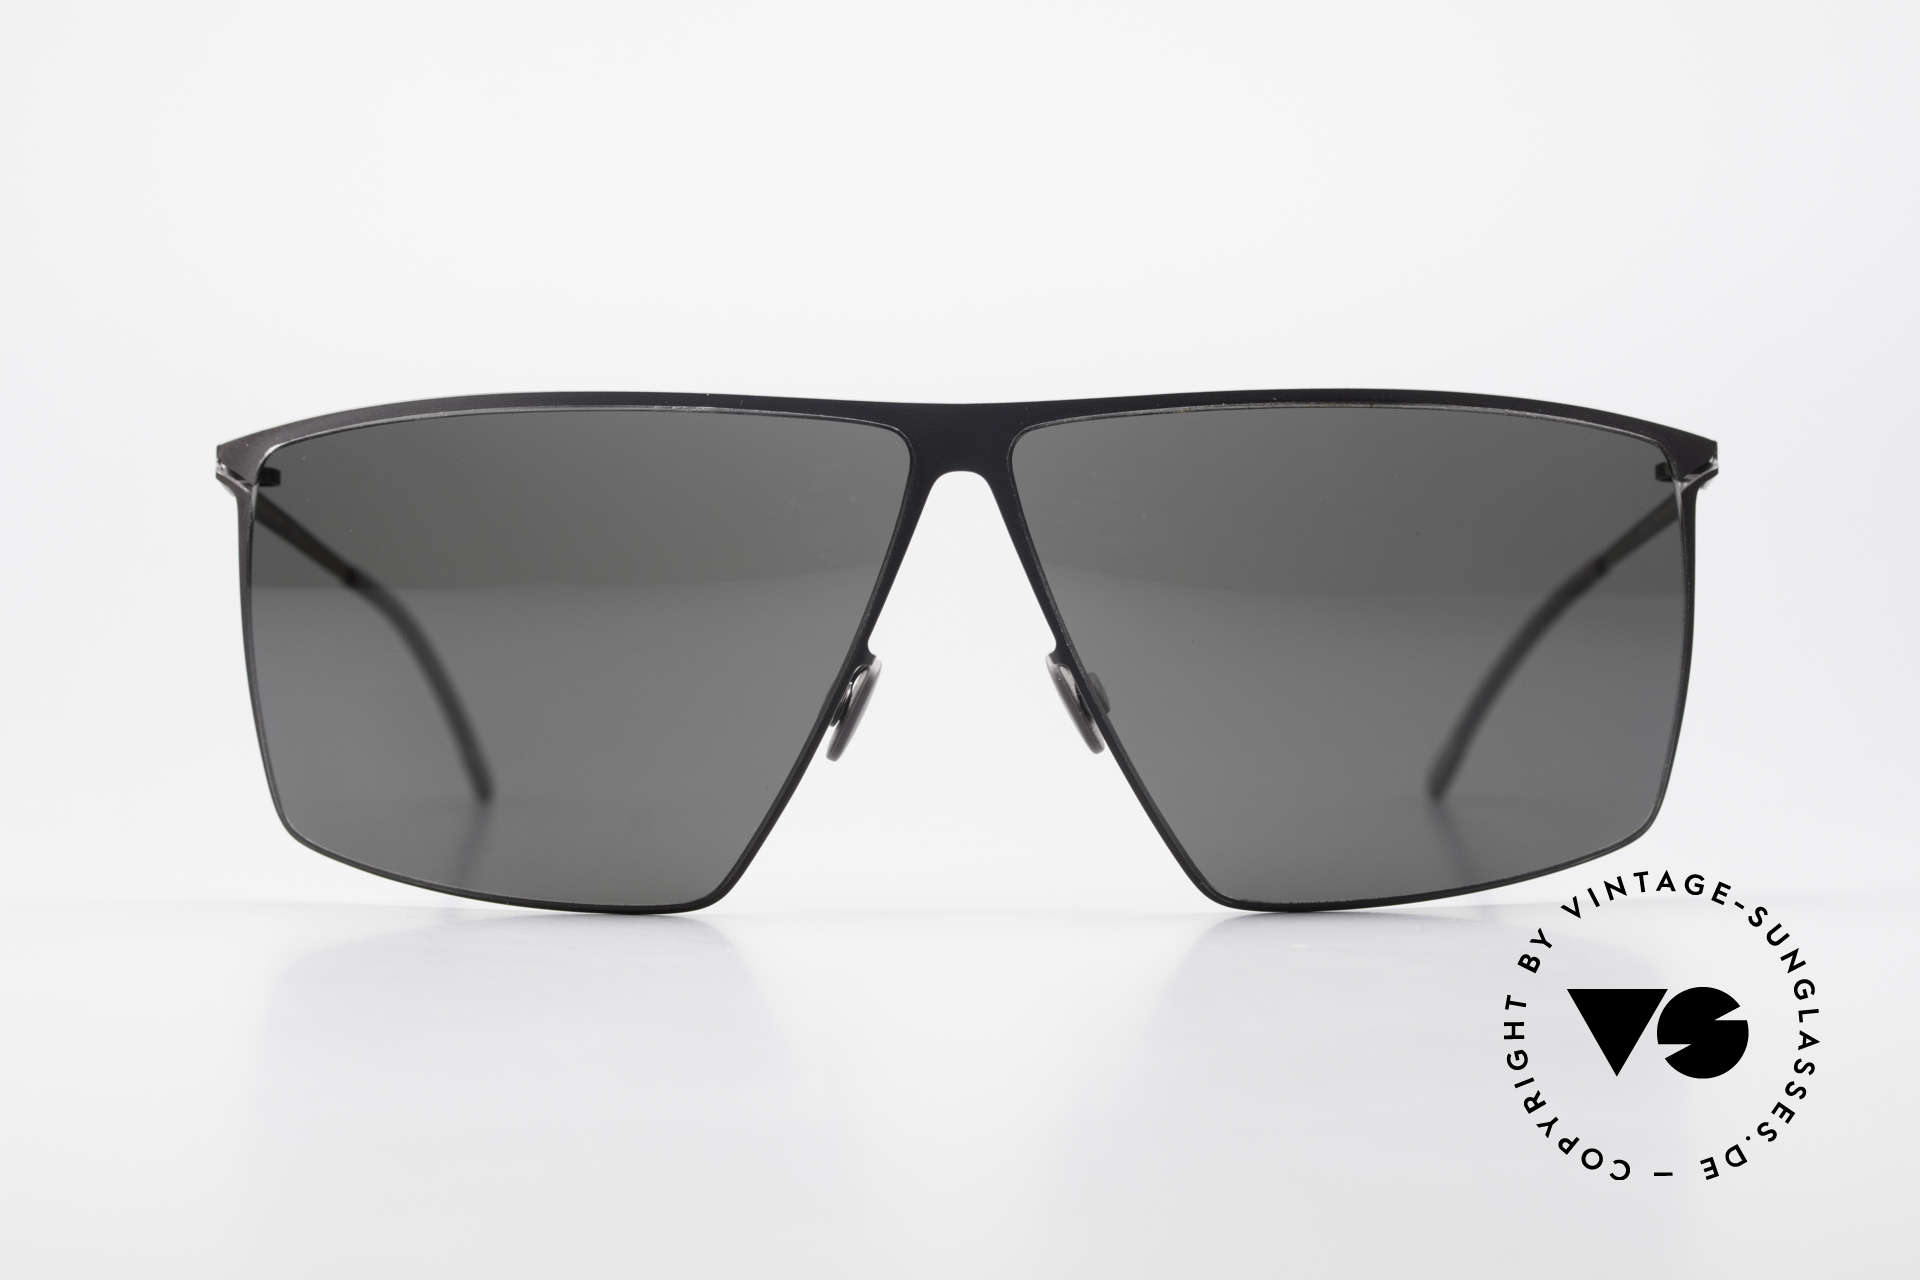 Mykita Amund Square Men's Sunglasses 2010, MYKITA: the youngest brand in our vintage collection, Made for Men